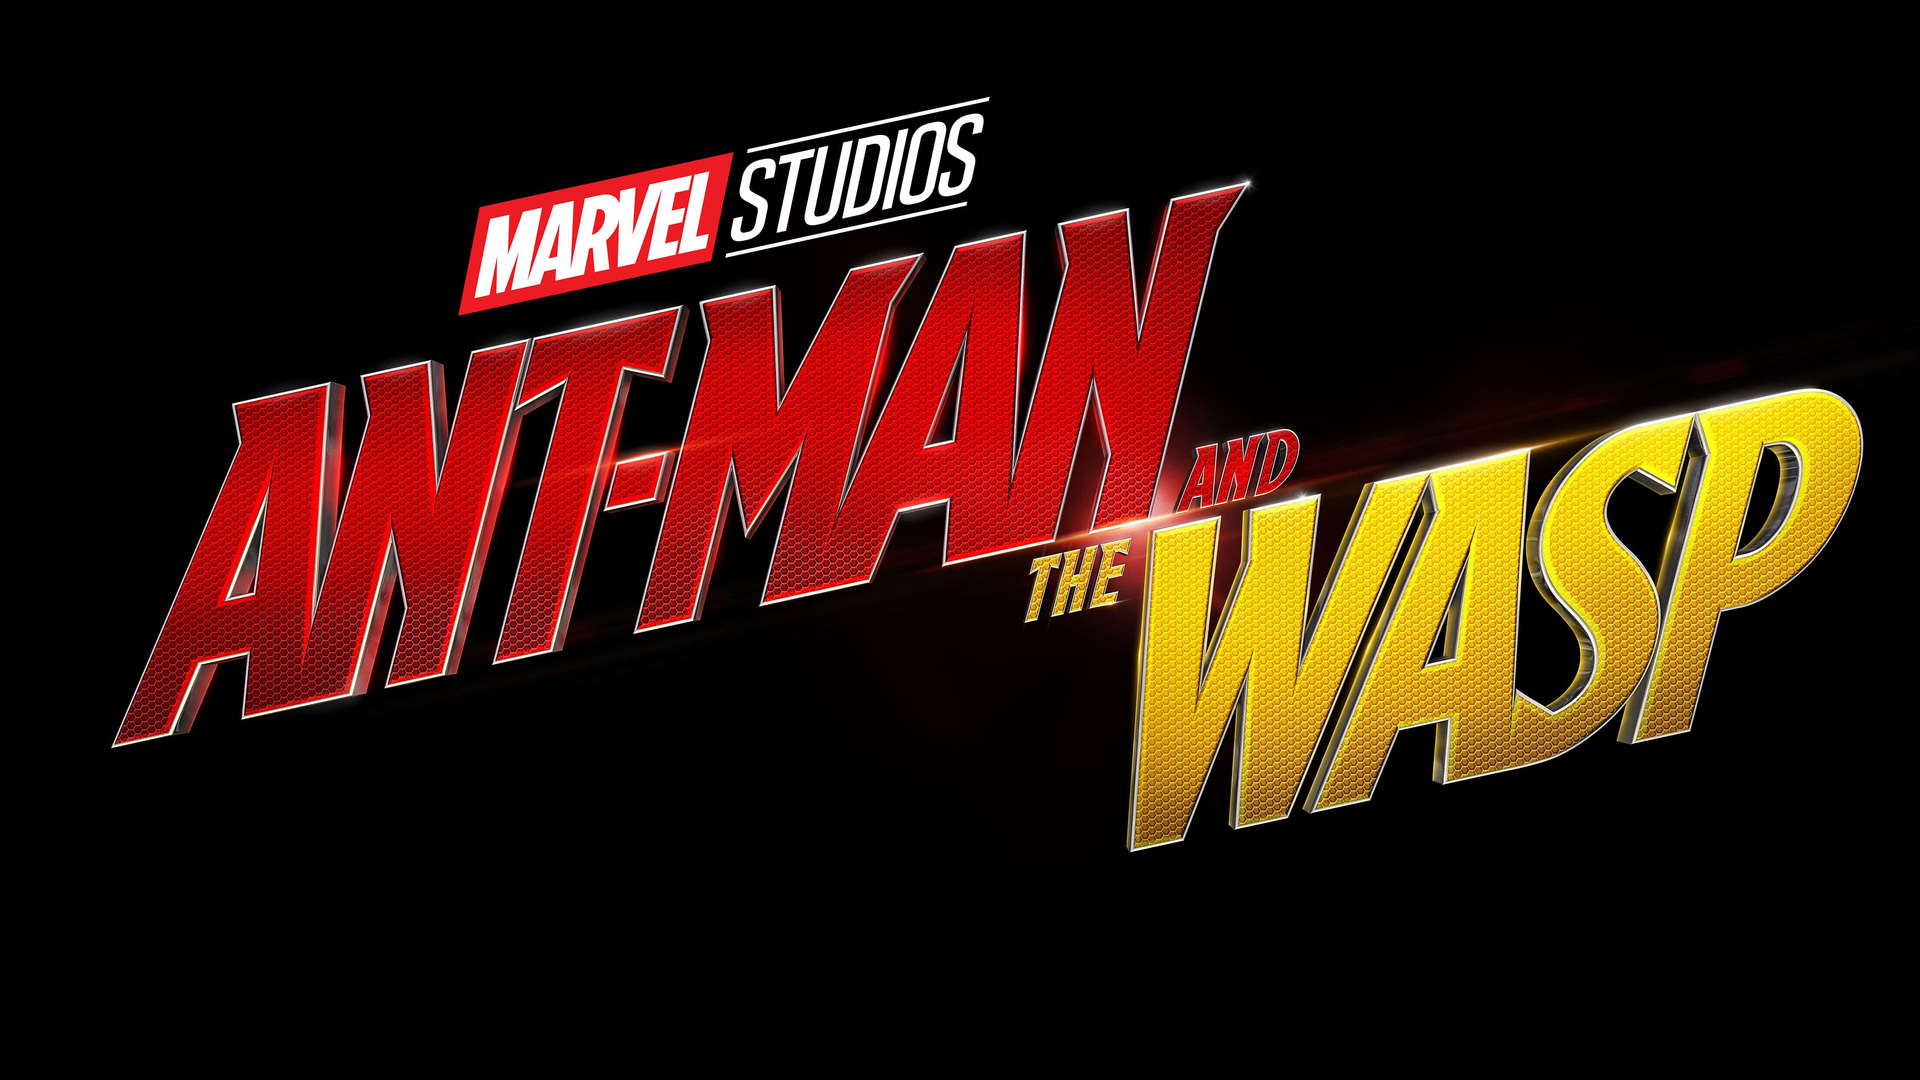 ant-man-and-the-wasp-movie-logo-48.jpg